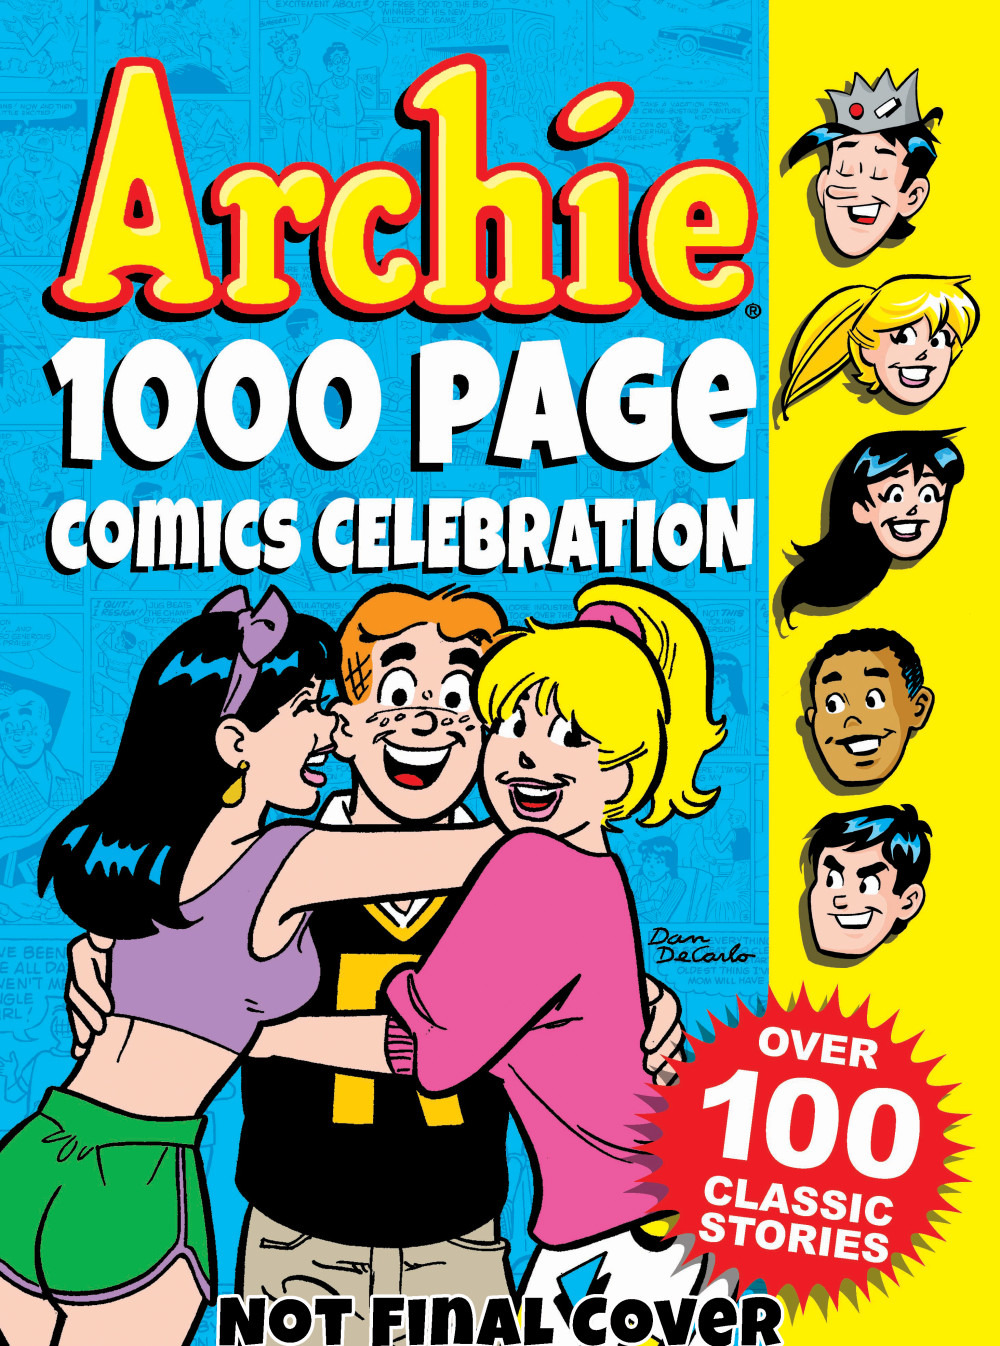 ARCHIE 1000 PG CMC CELEBRATION awkward